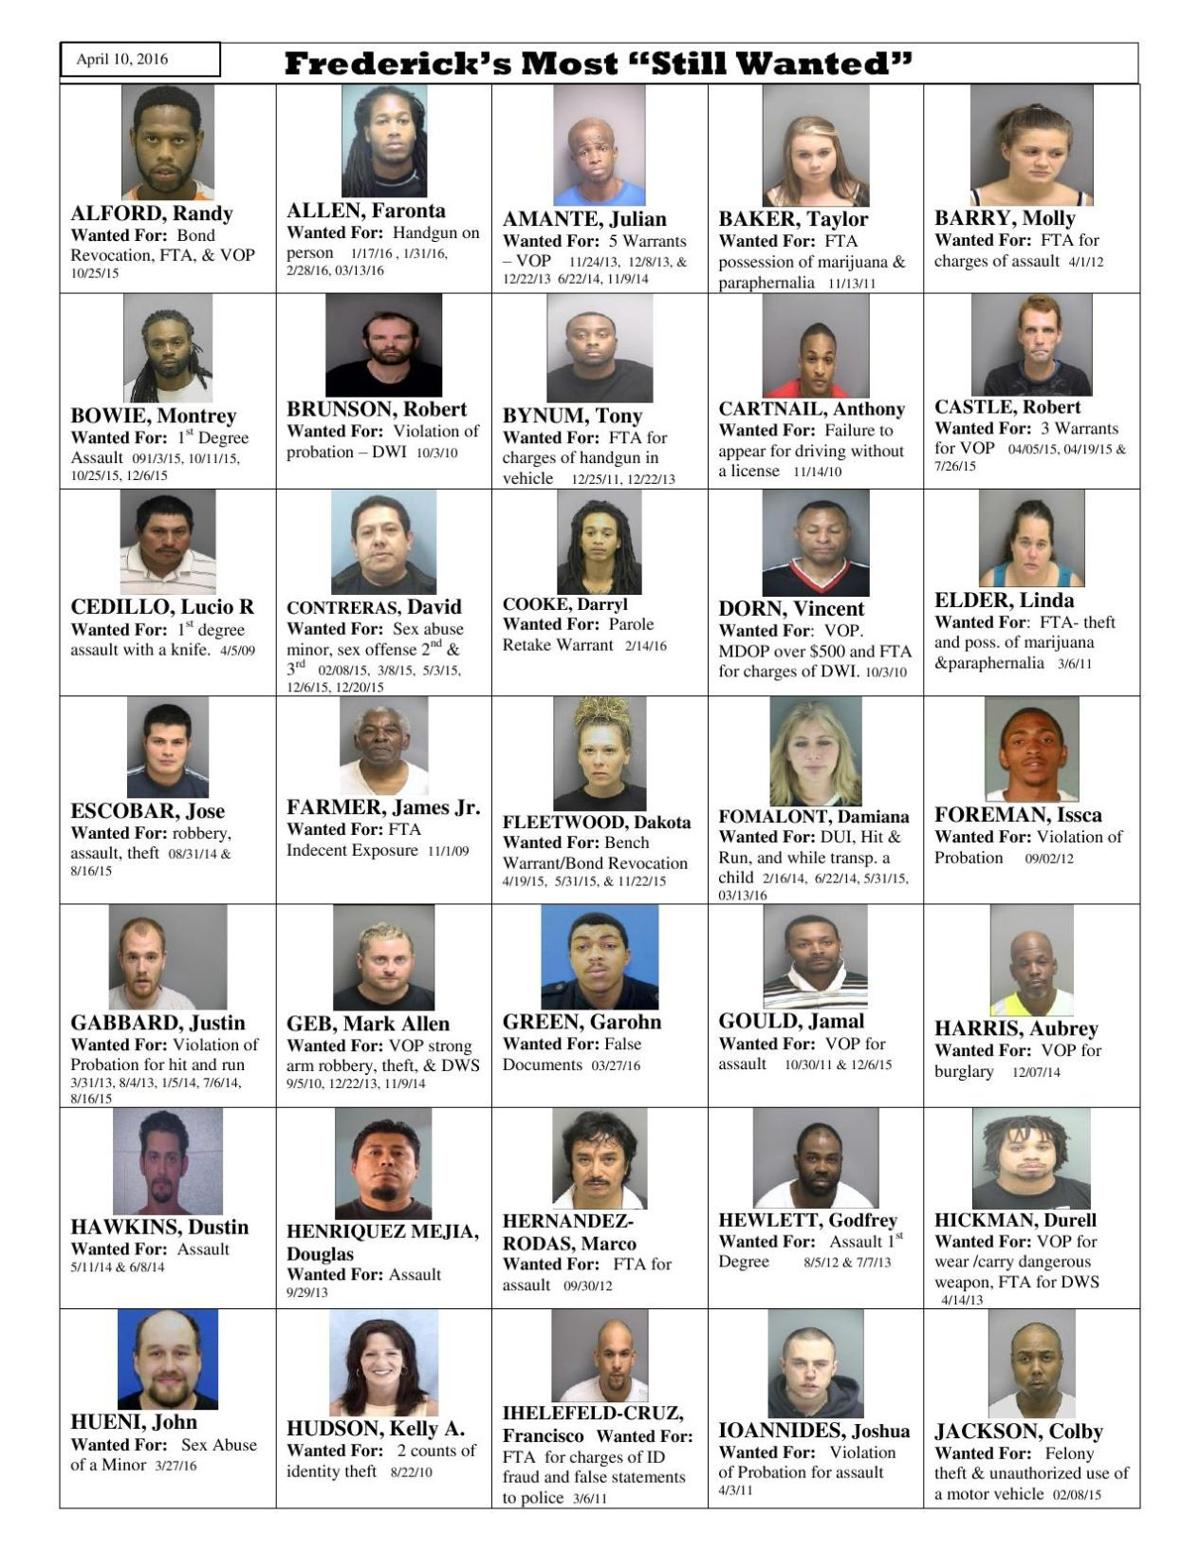 Frederick Police Department's most wanted - April 10, 2016